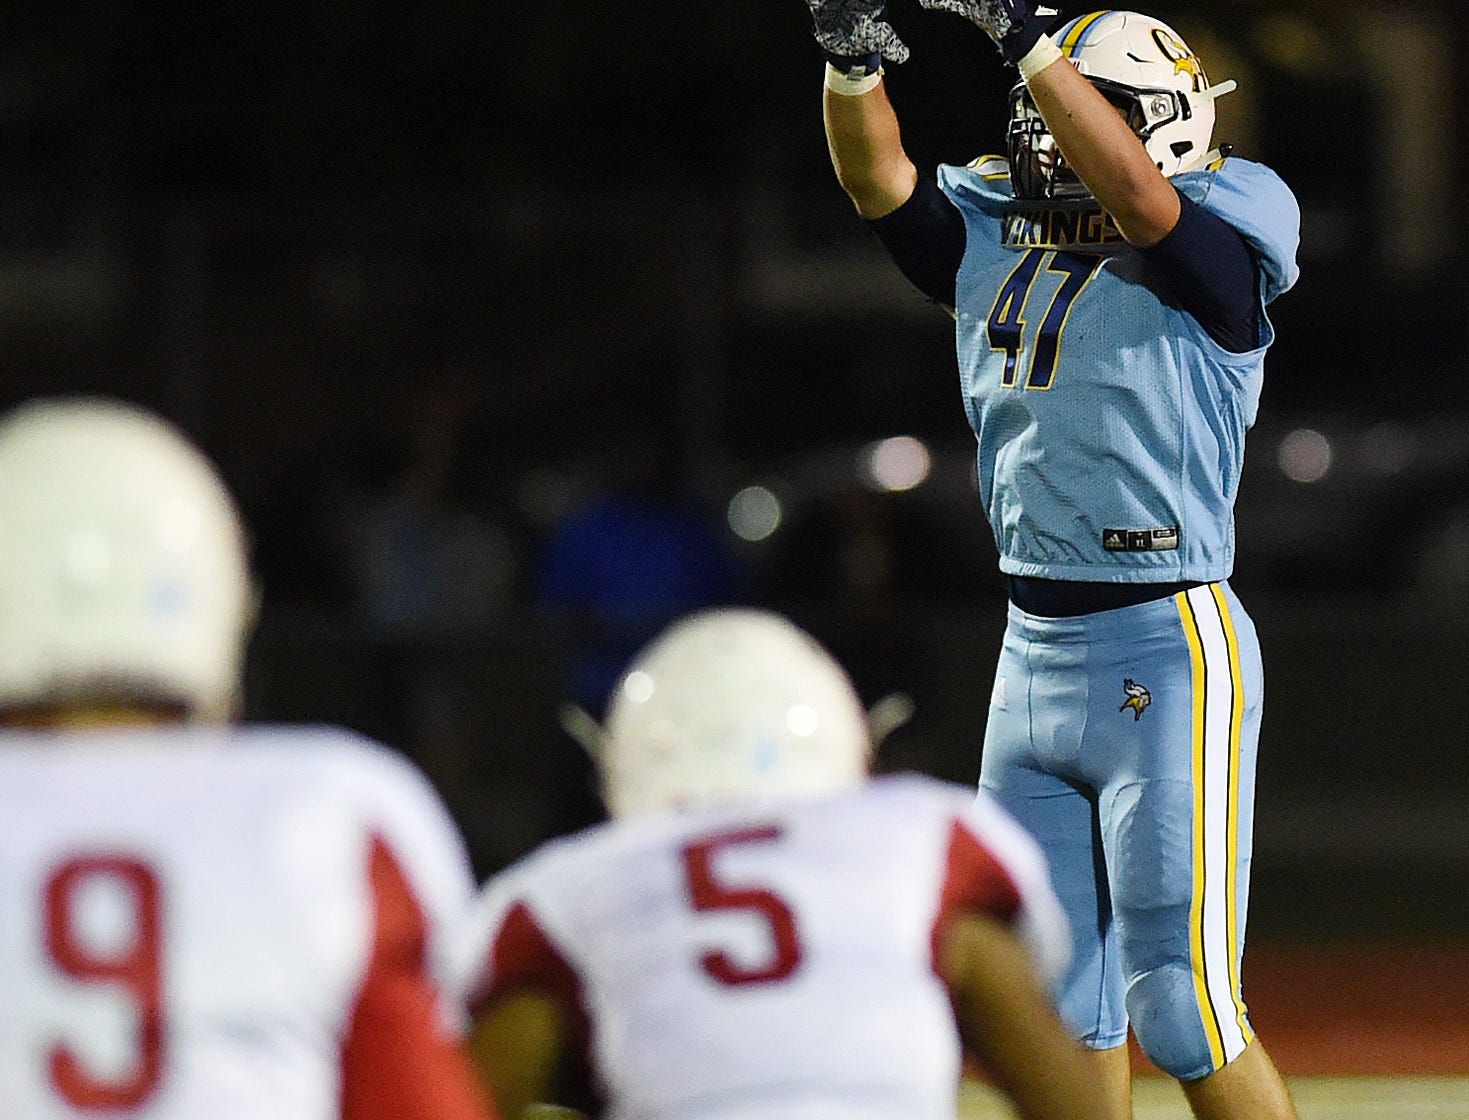 Cape Punter #47 Patrick Tkach jumps for the ball as Cape Henlopen HS (blue) hosted Smyrna HS (red) in Varsity Football in Legends Stadium at the school near Lewes on Friday September 28.